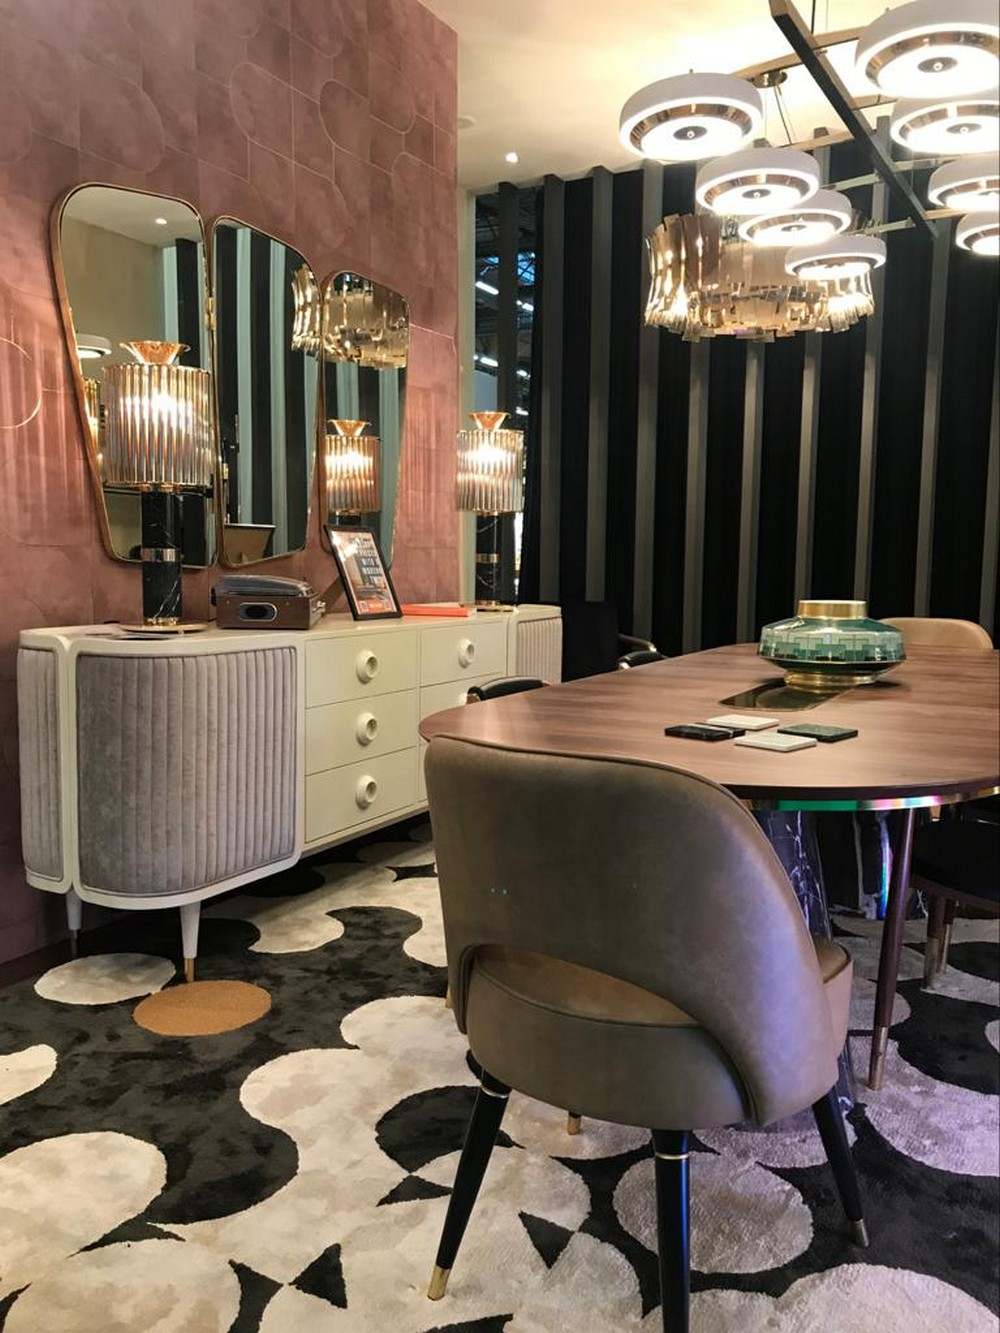 The Best News & Trends Already Spotted at Maison et Objet 2020 17 maison et objet The Best News & Trends Already Spotted at Maison et Objet 2020 The Best News Trends Already Spotted at Maison et Objet 2020 17